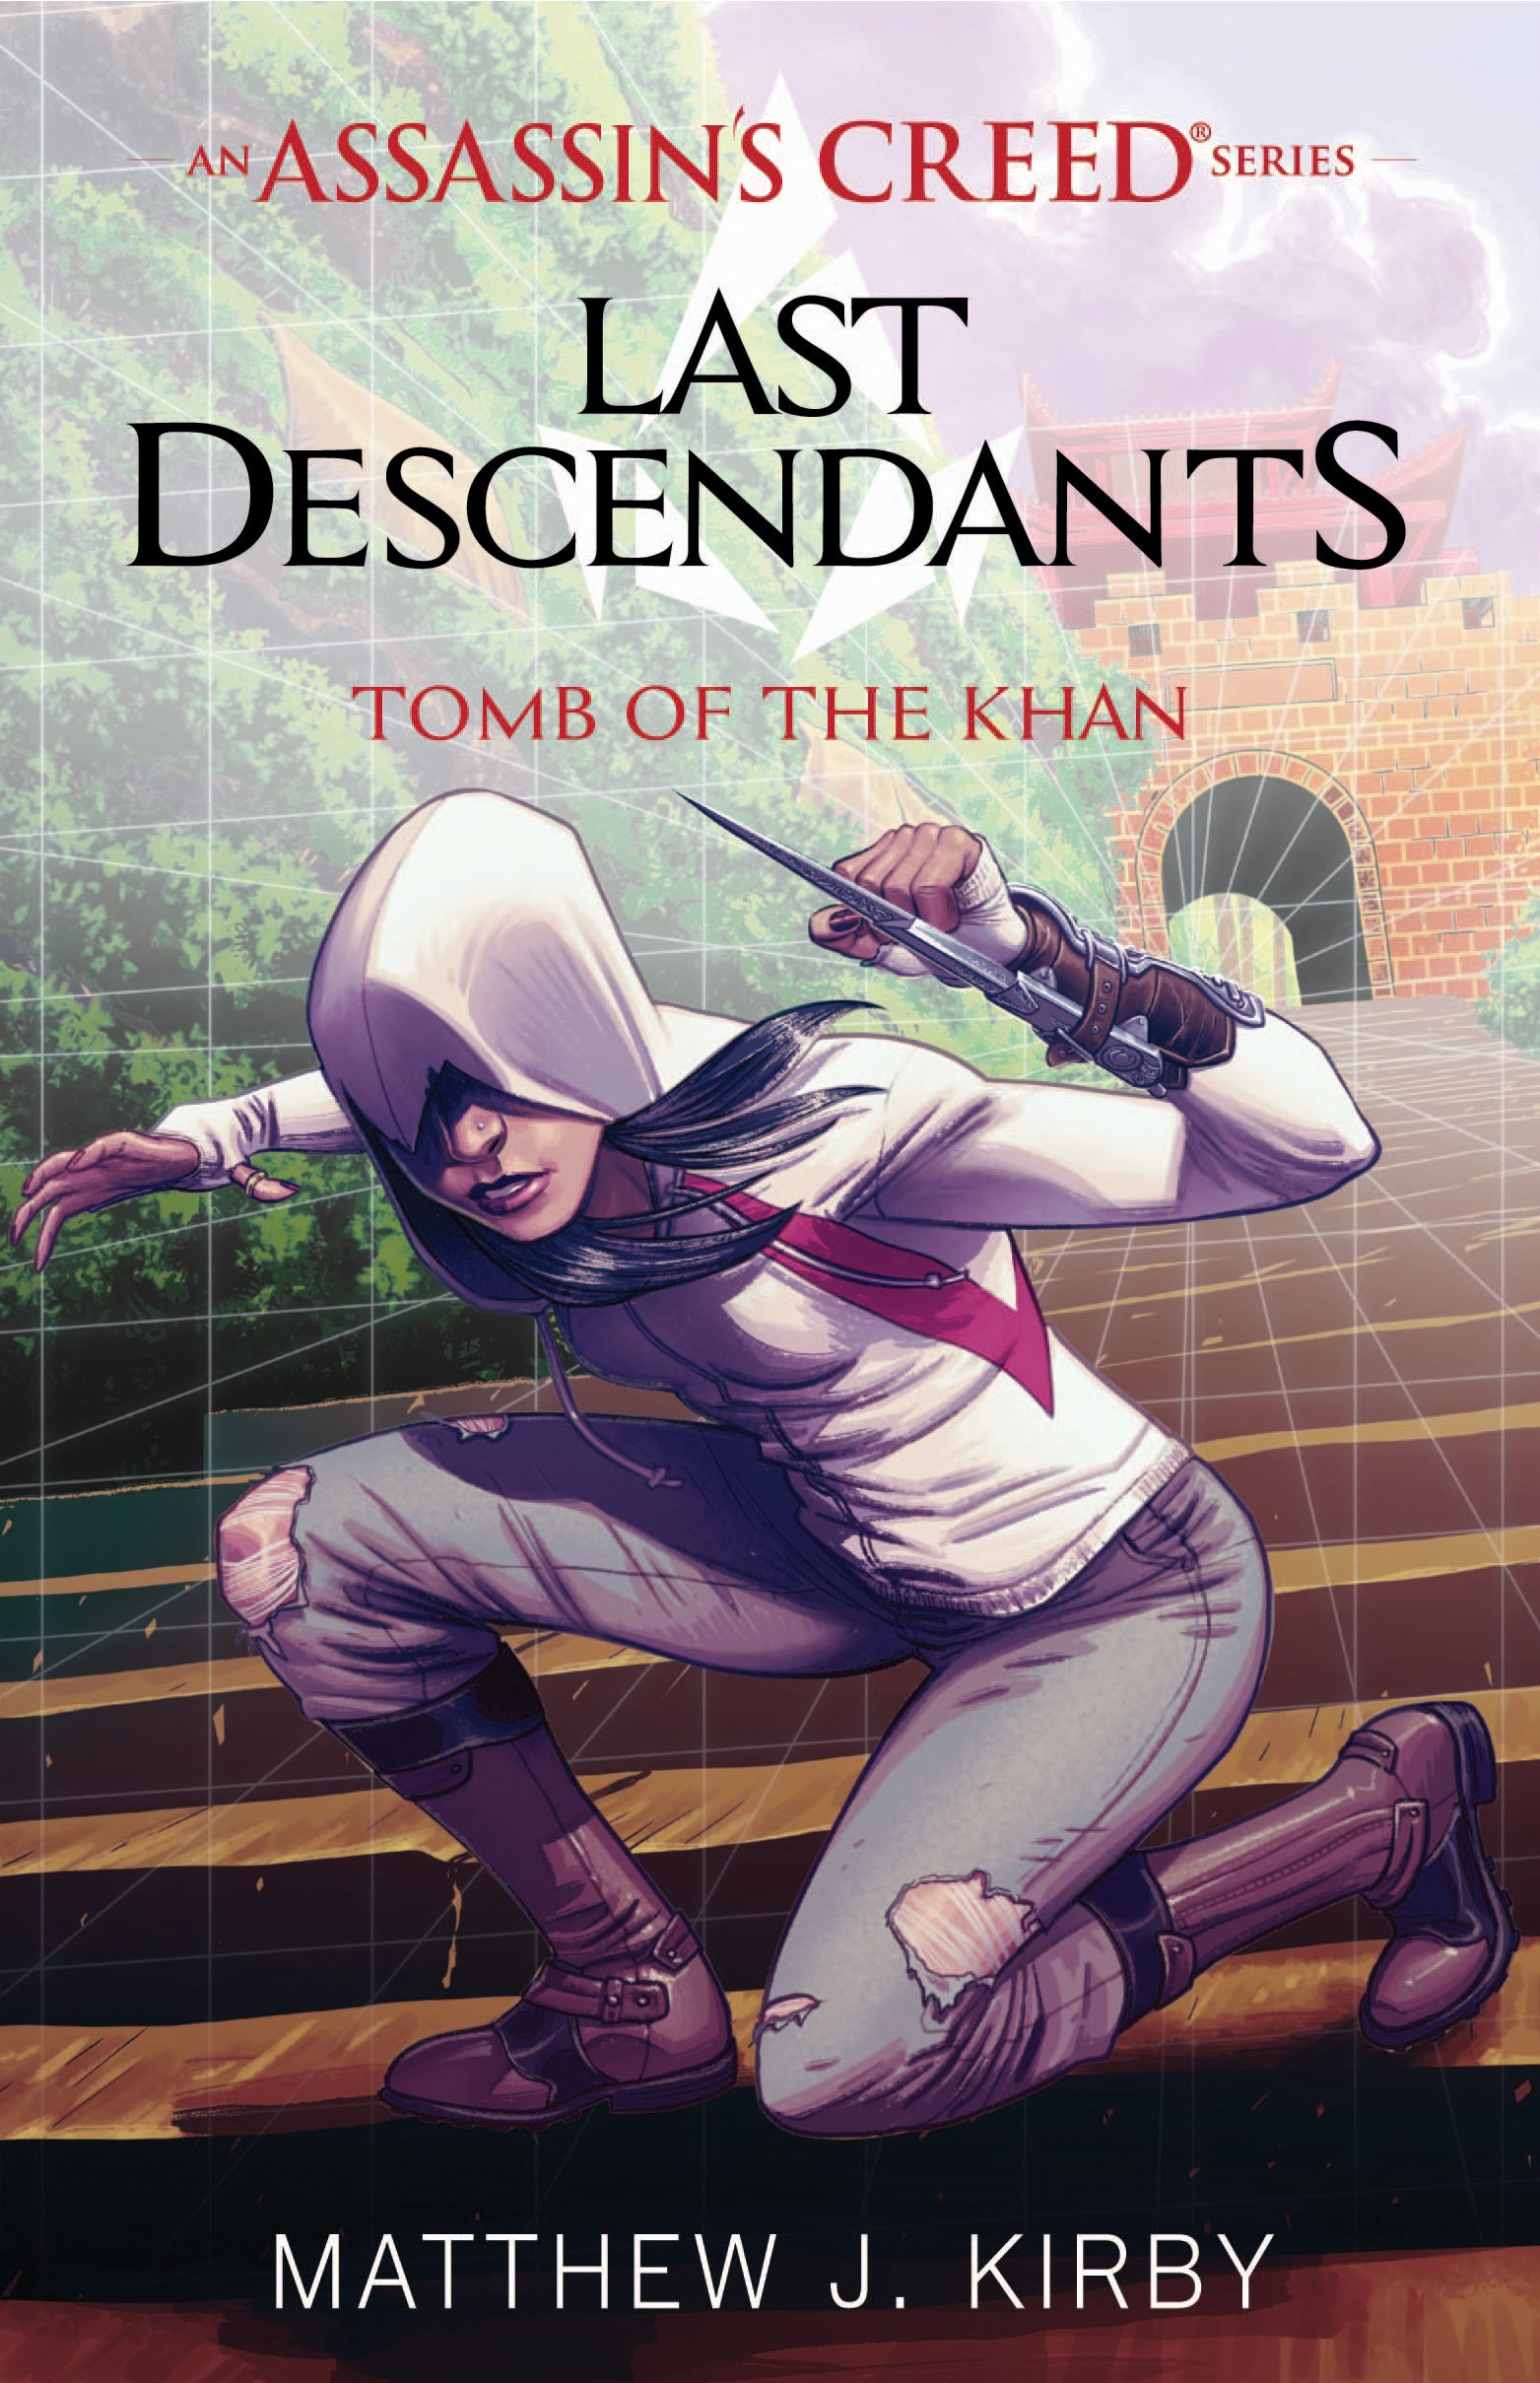 assassin's creed books order